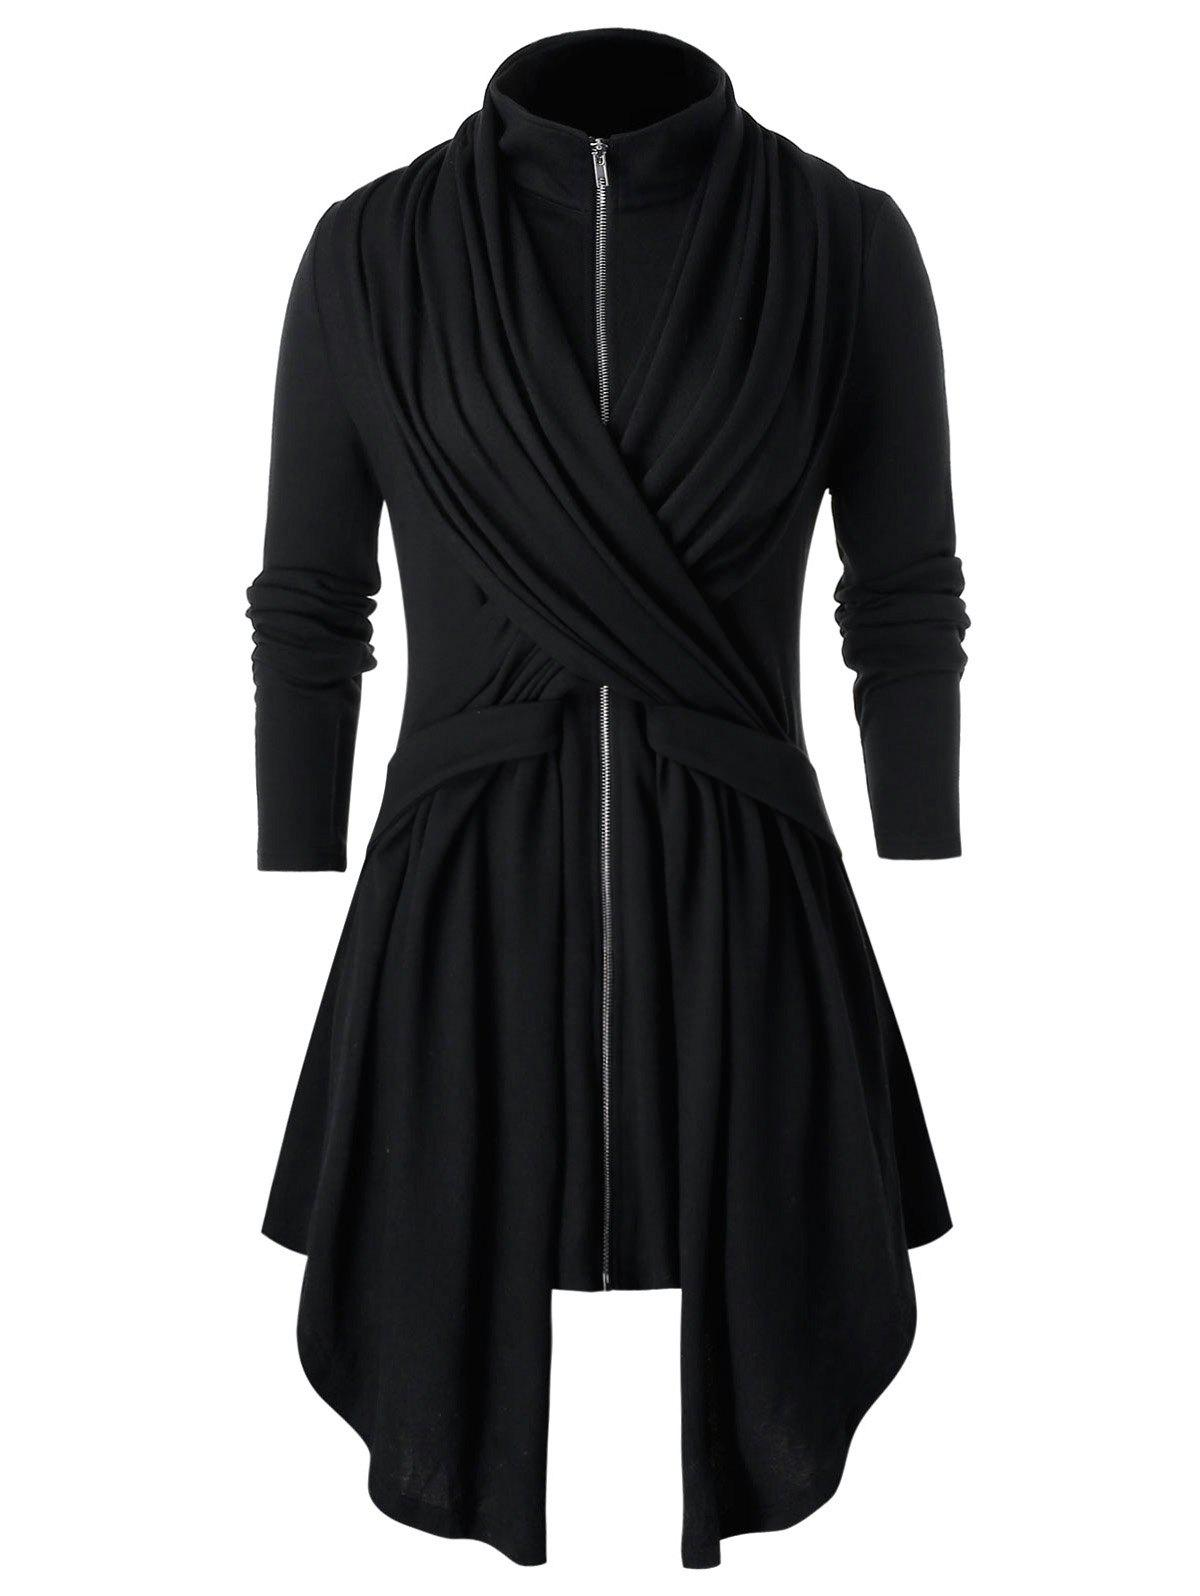 Plus Size Asymmetrical Solid High Collar Coat - BLACK 2X